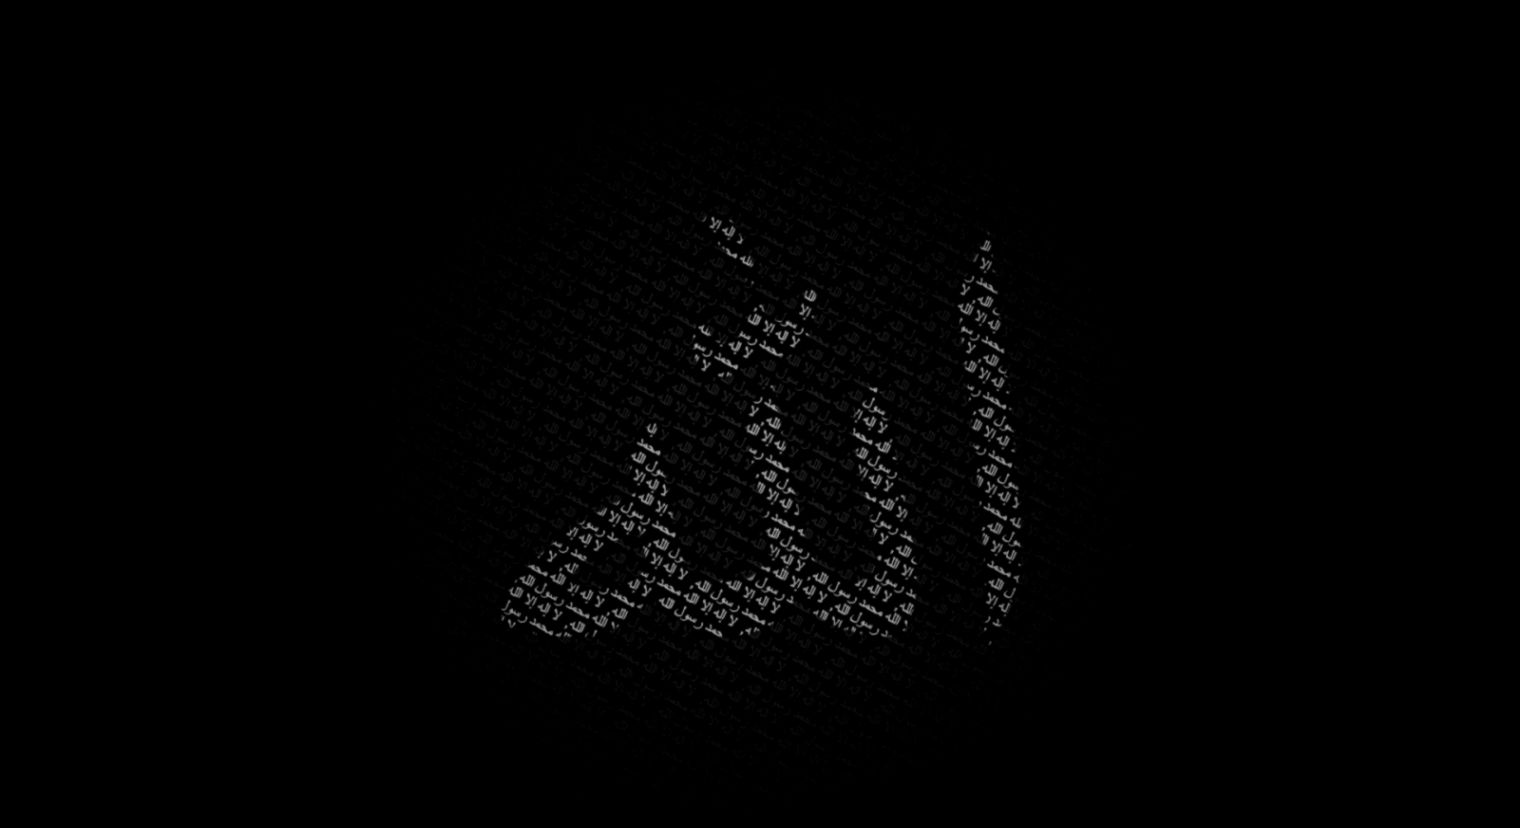 Wallpaper Hd 1080p Black And White Allah Wallpapers Simple